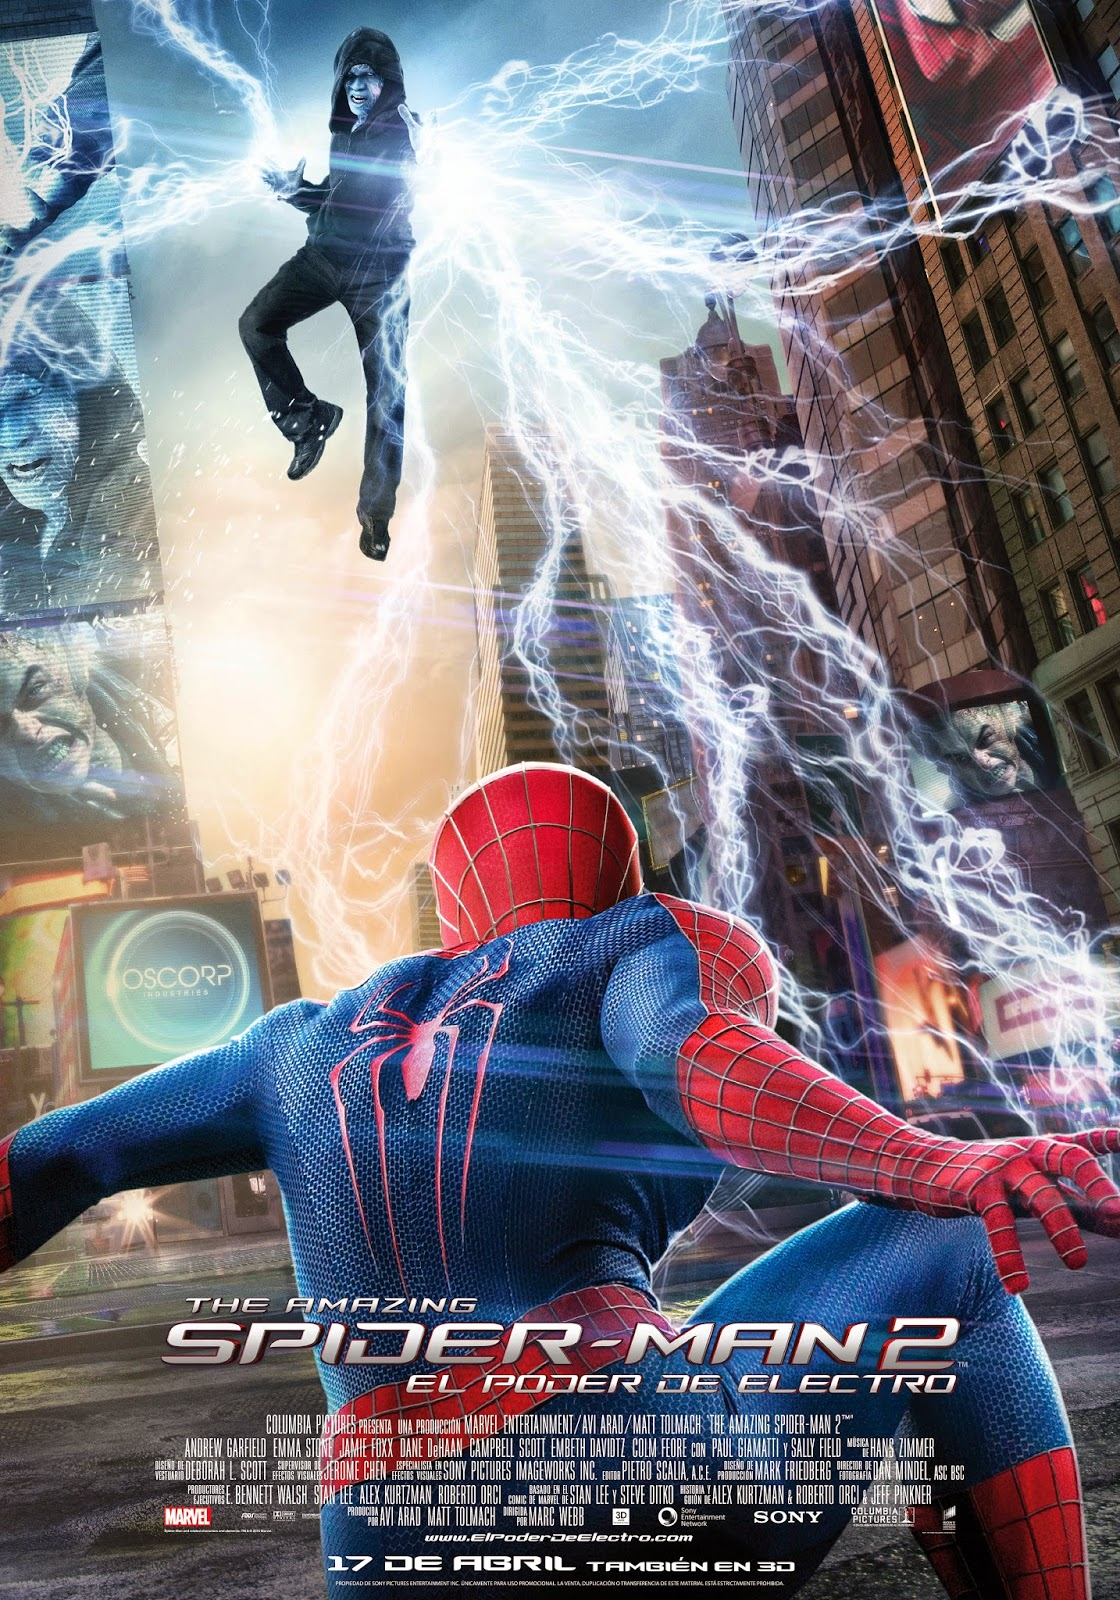 The Amazing Spiderman 2: El poder de Electro tráiler final.